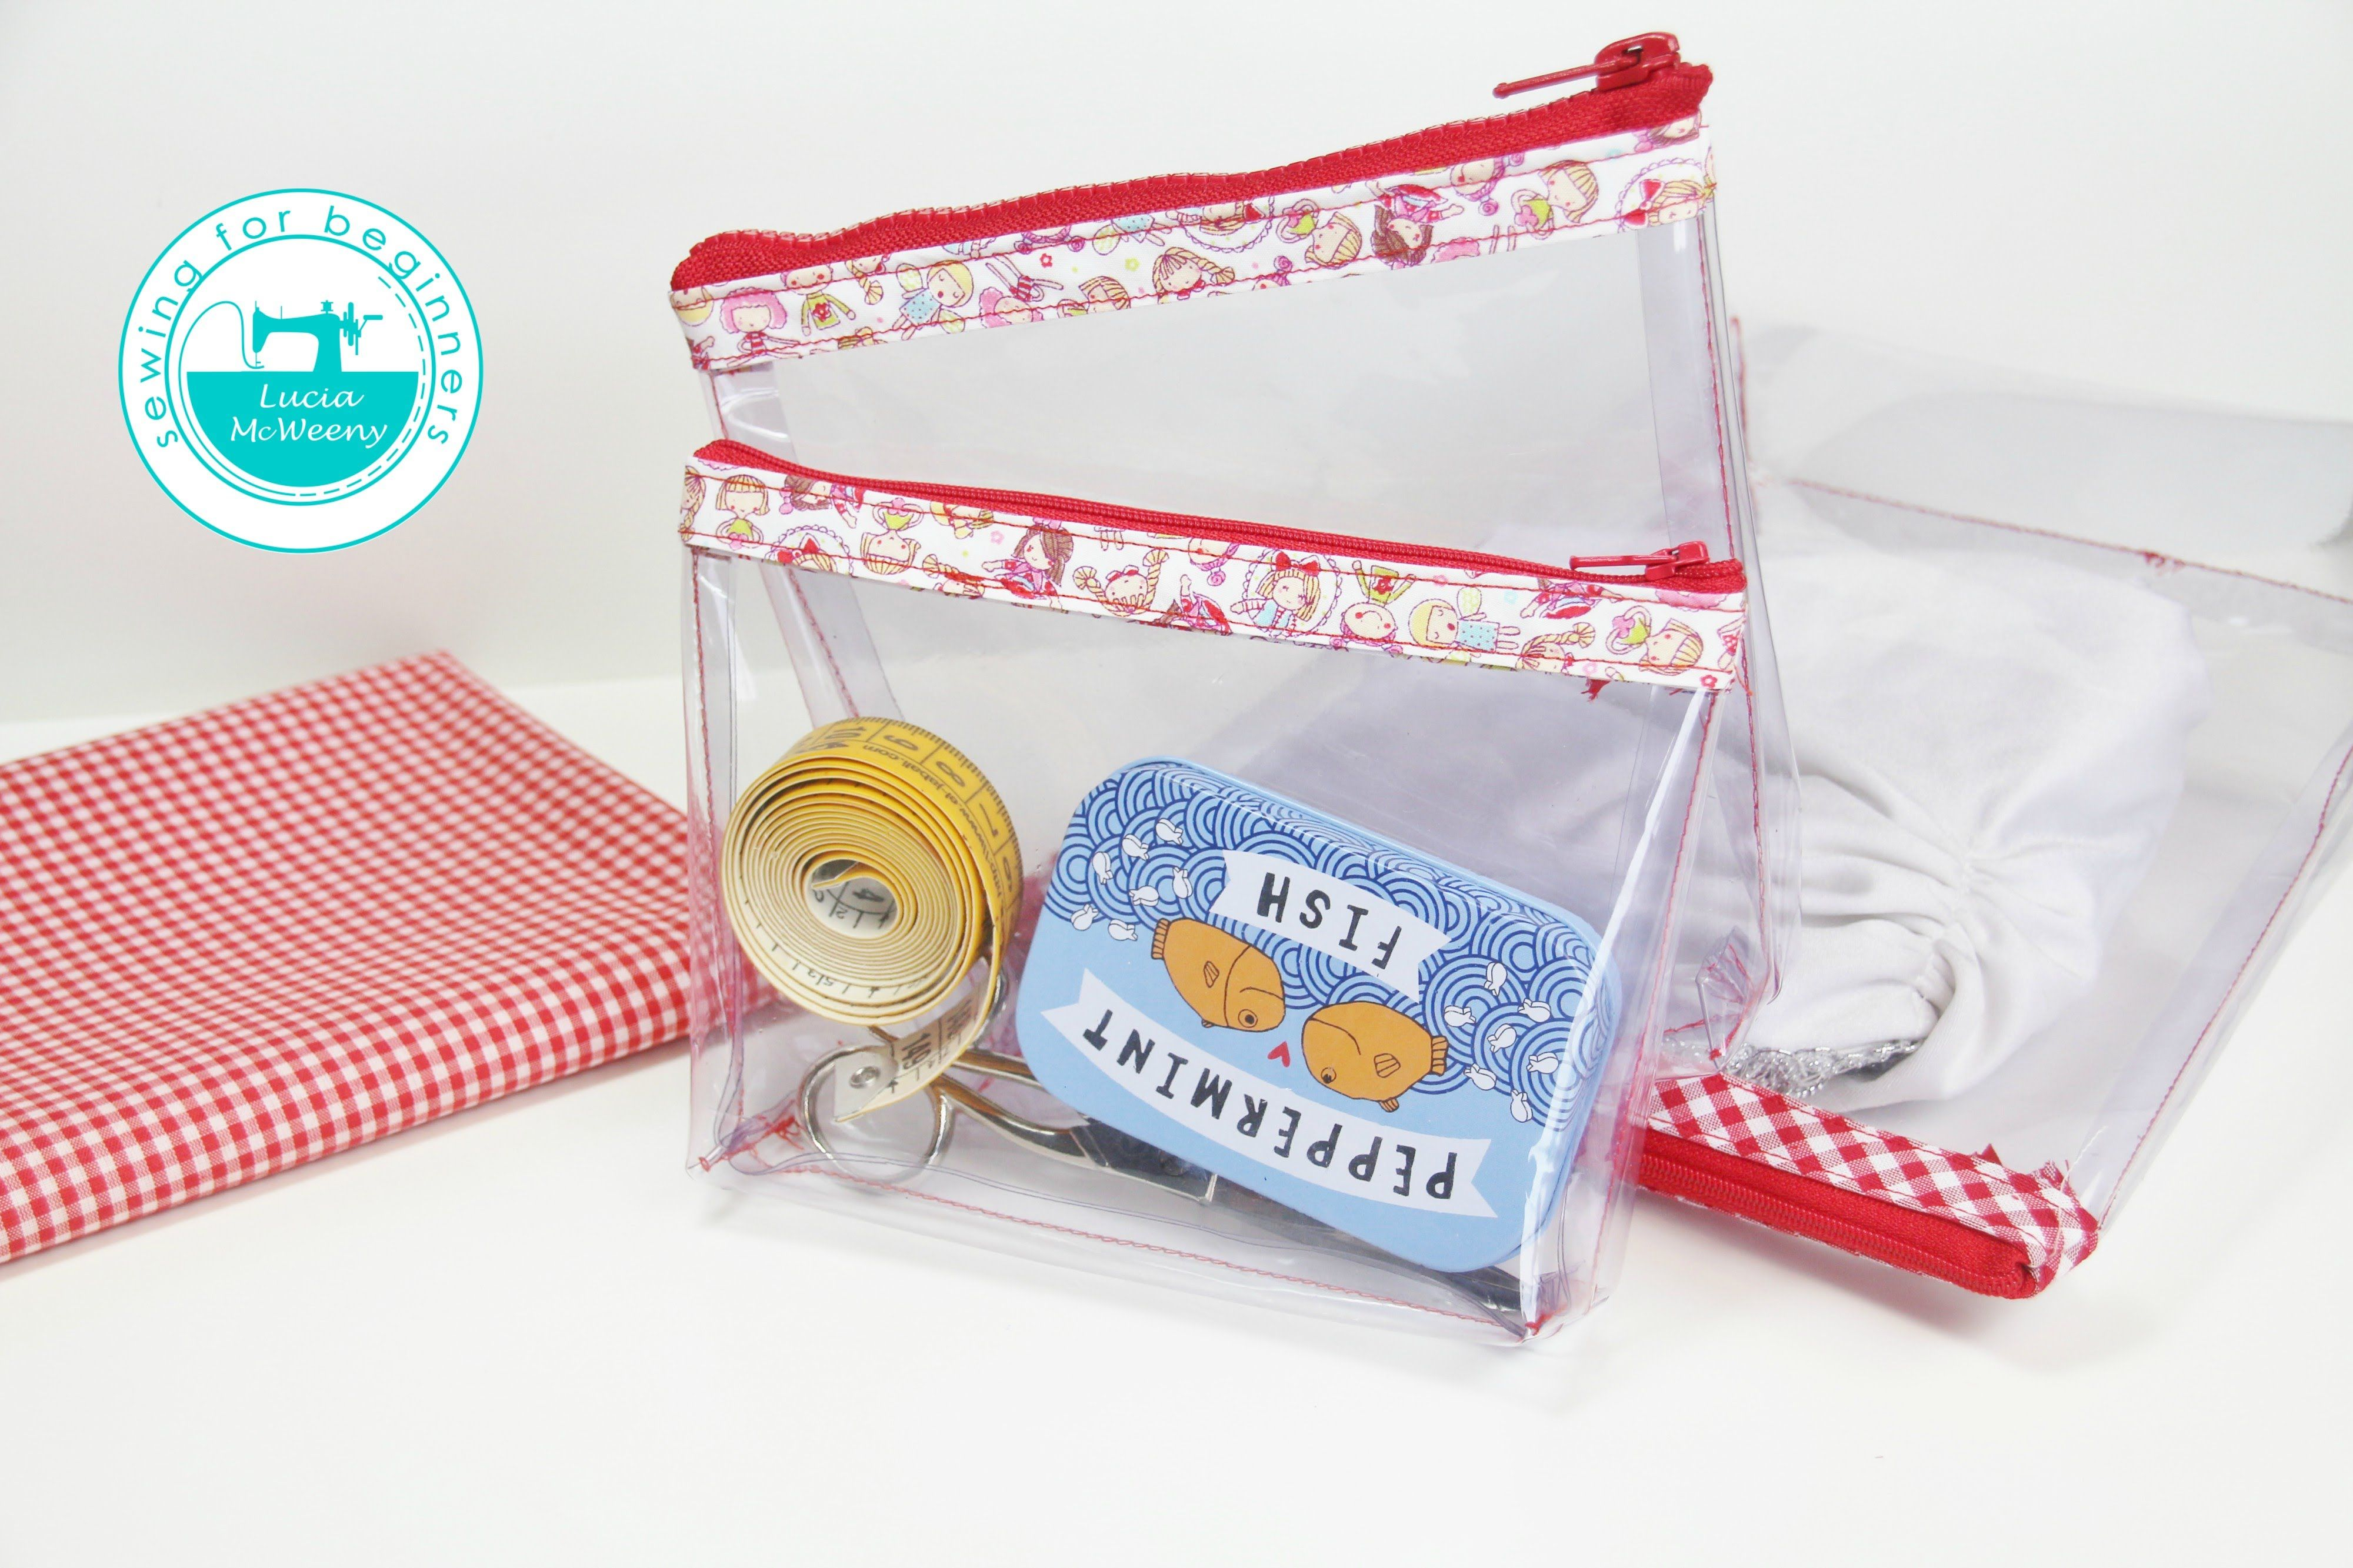 Follow this easy DIY to make a clear pencil case or